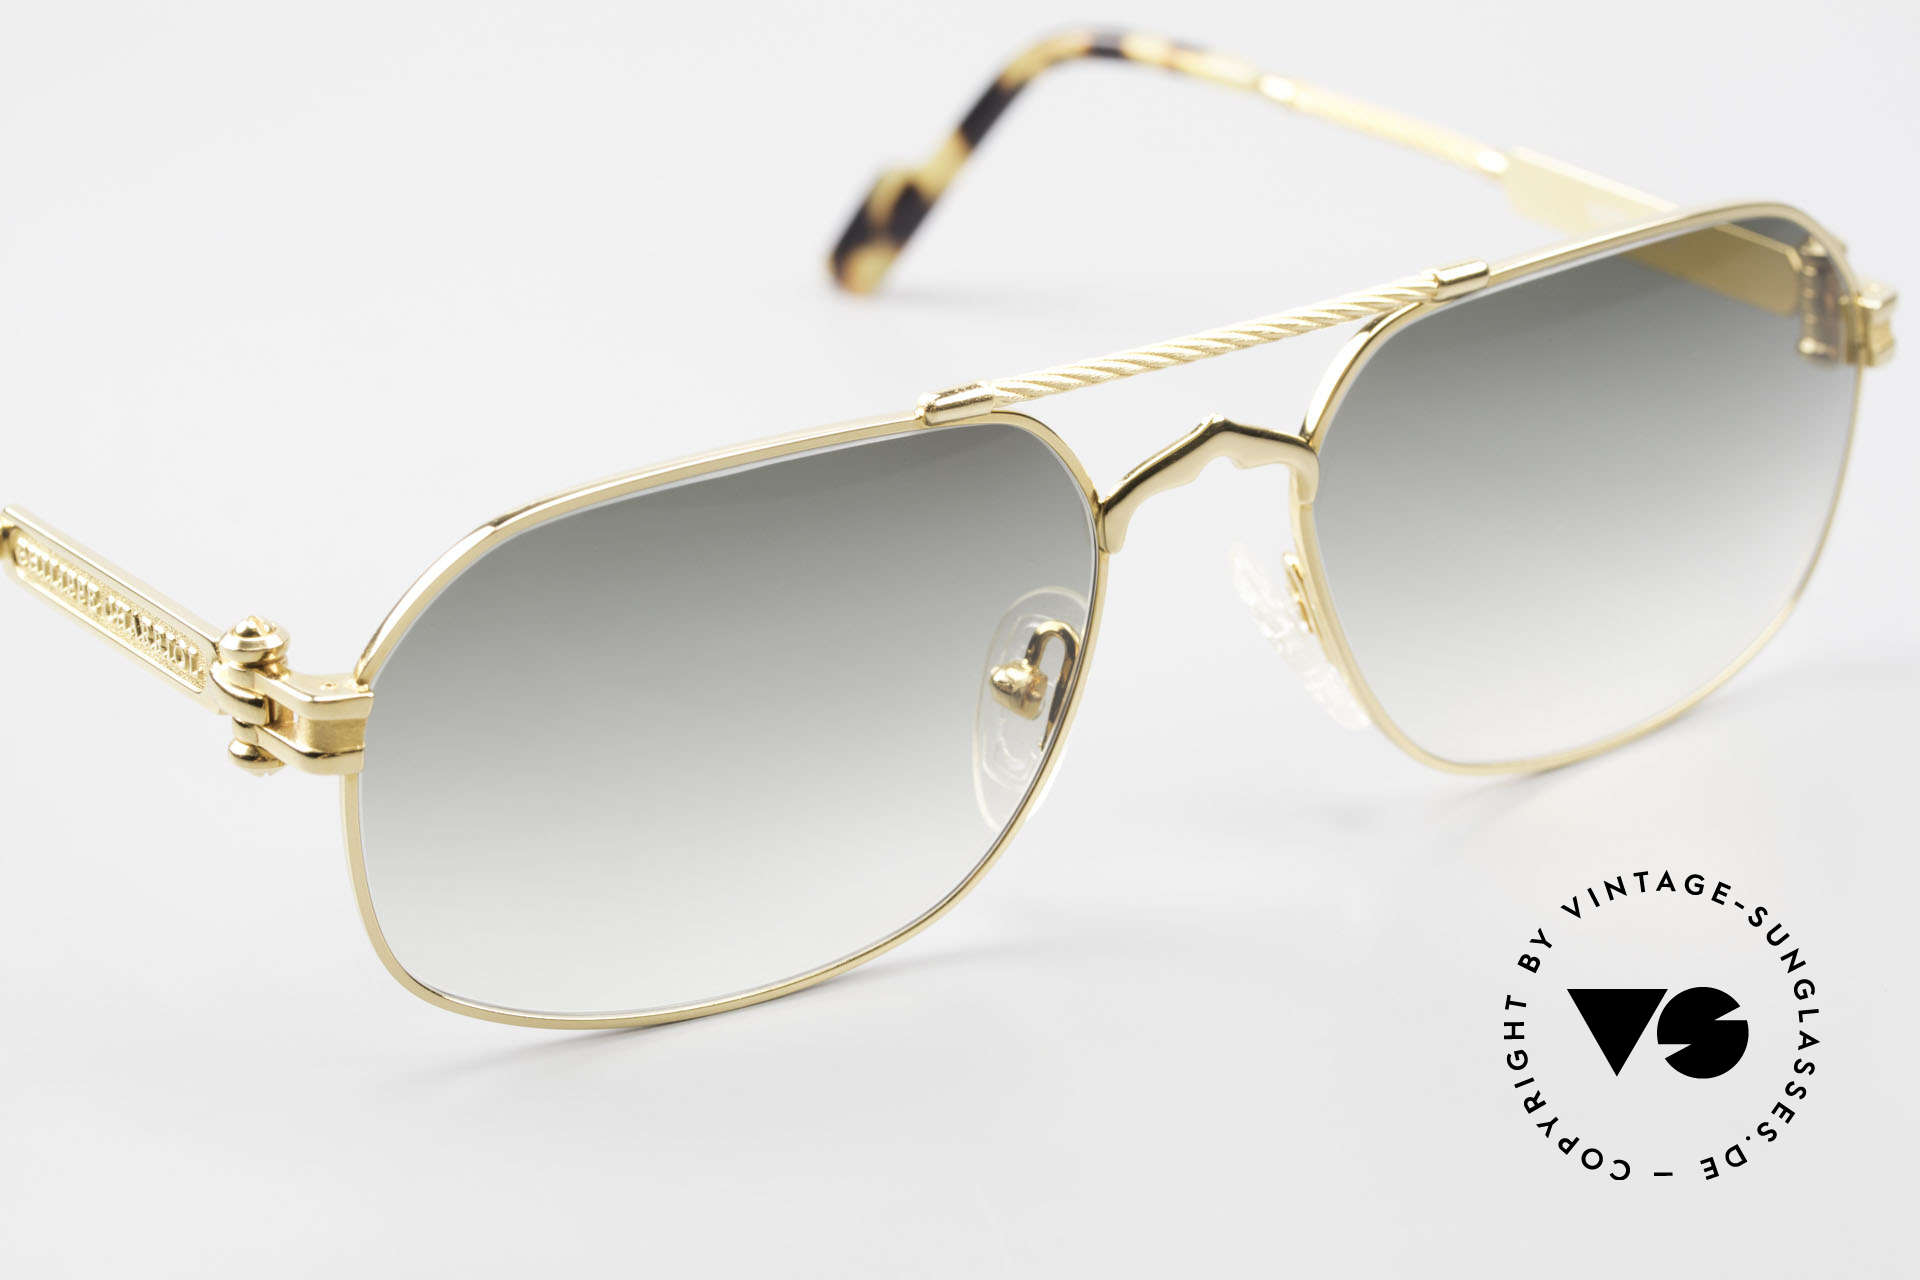 Philippe Charriol 90PP Insider 80's Luxury Sunglasses, this unworn rarity comes with the original P.C. box, Made for Men